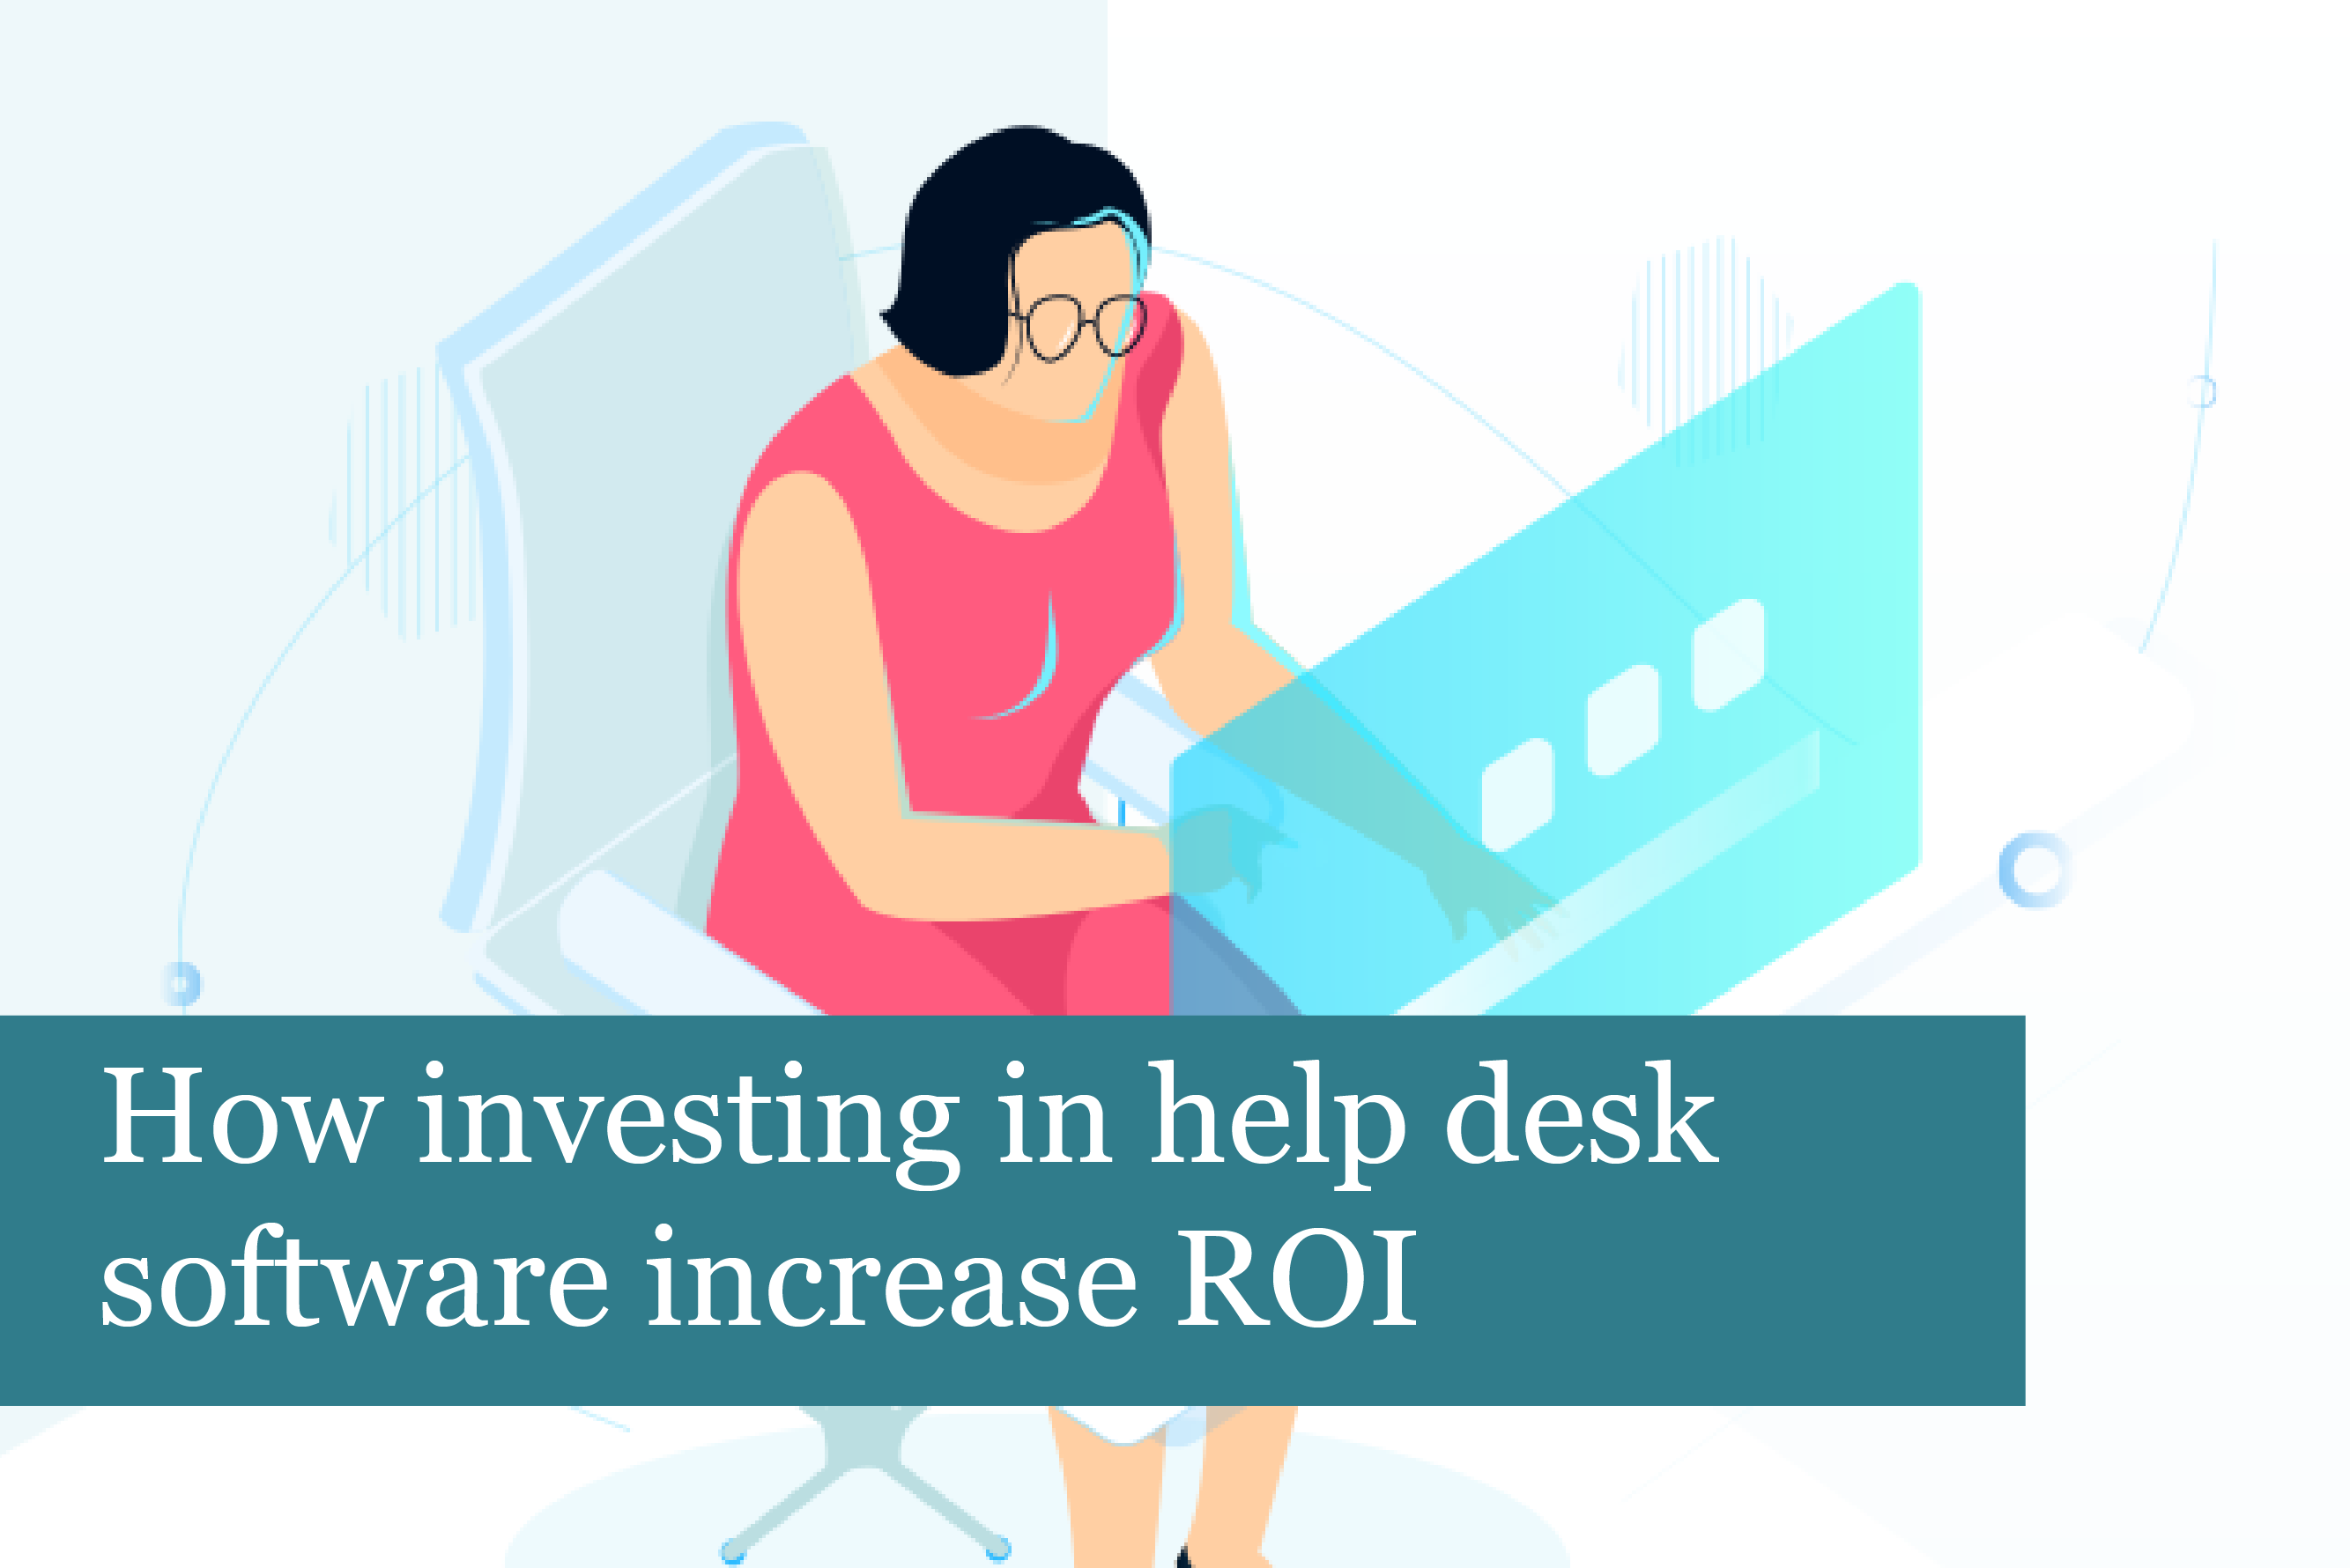 How investing in help desk software increases ROI